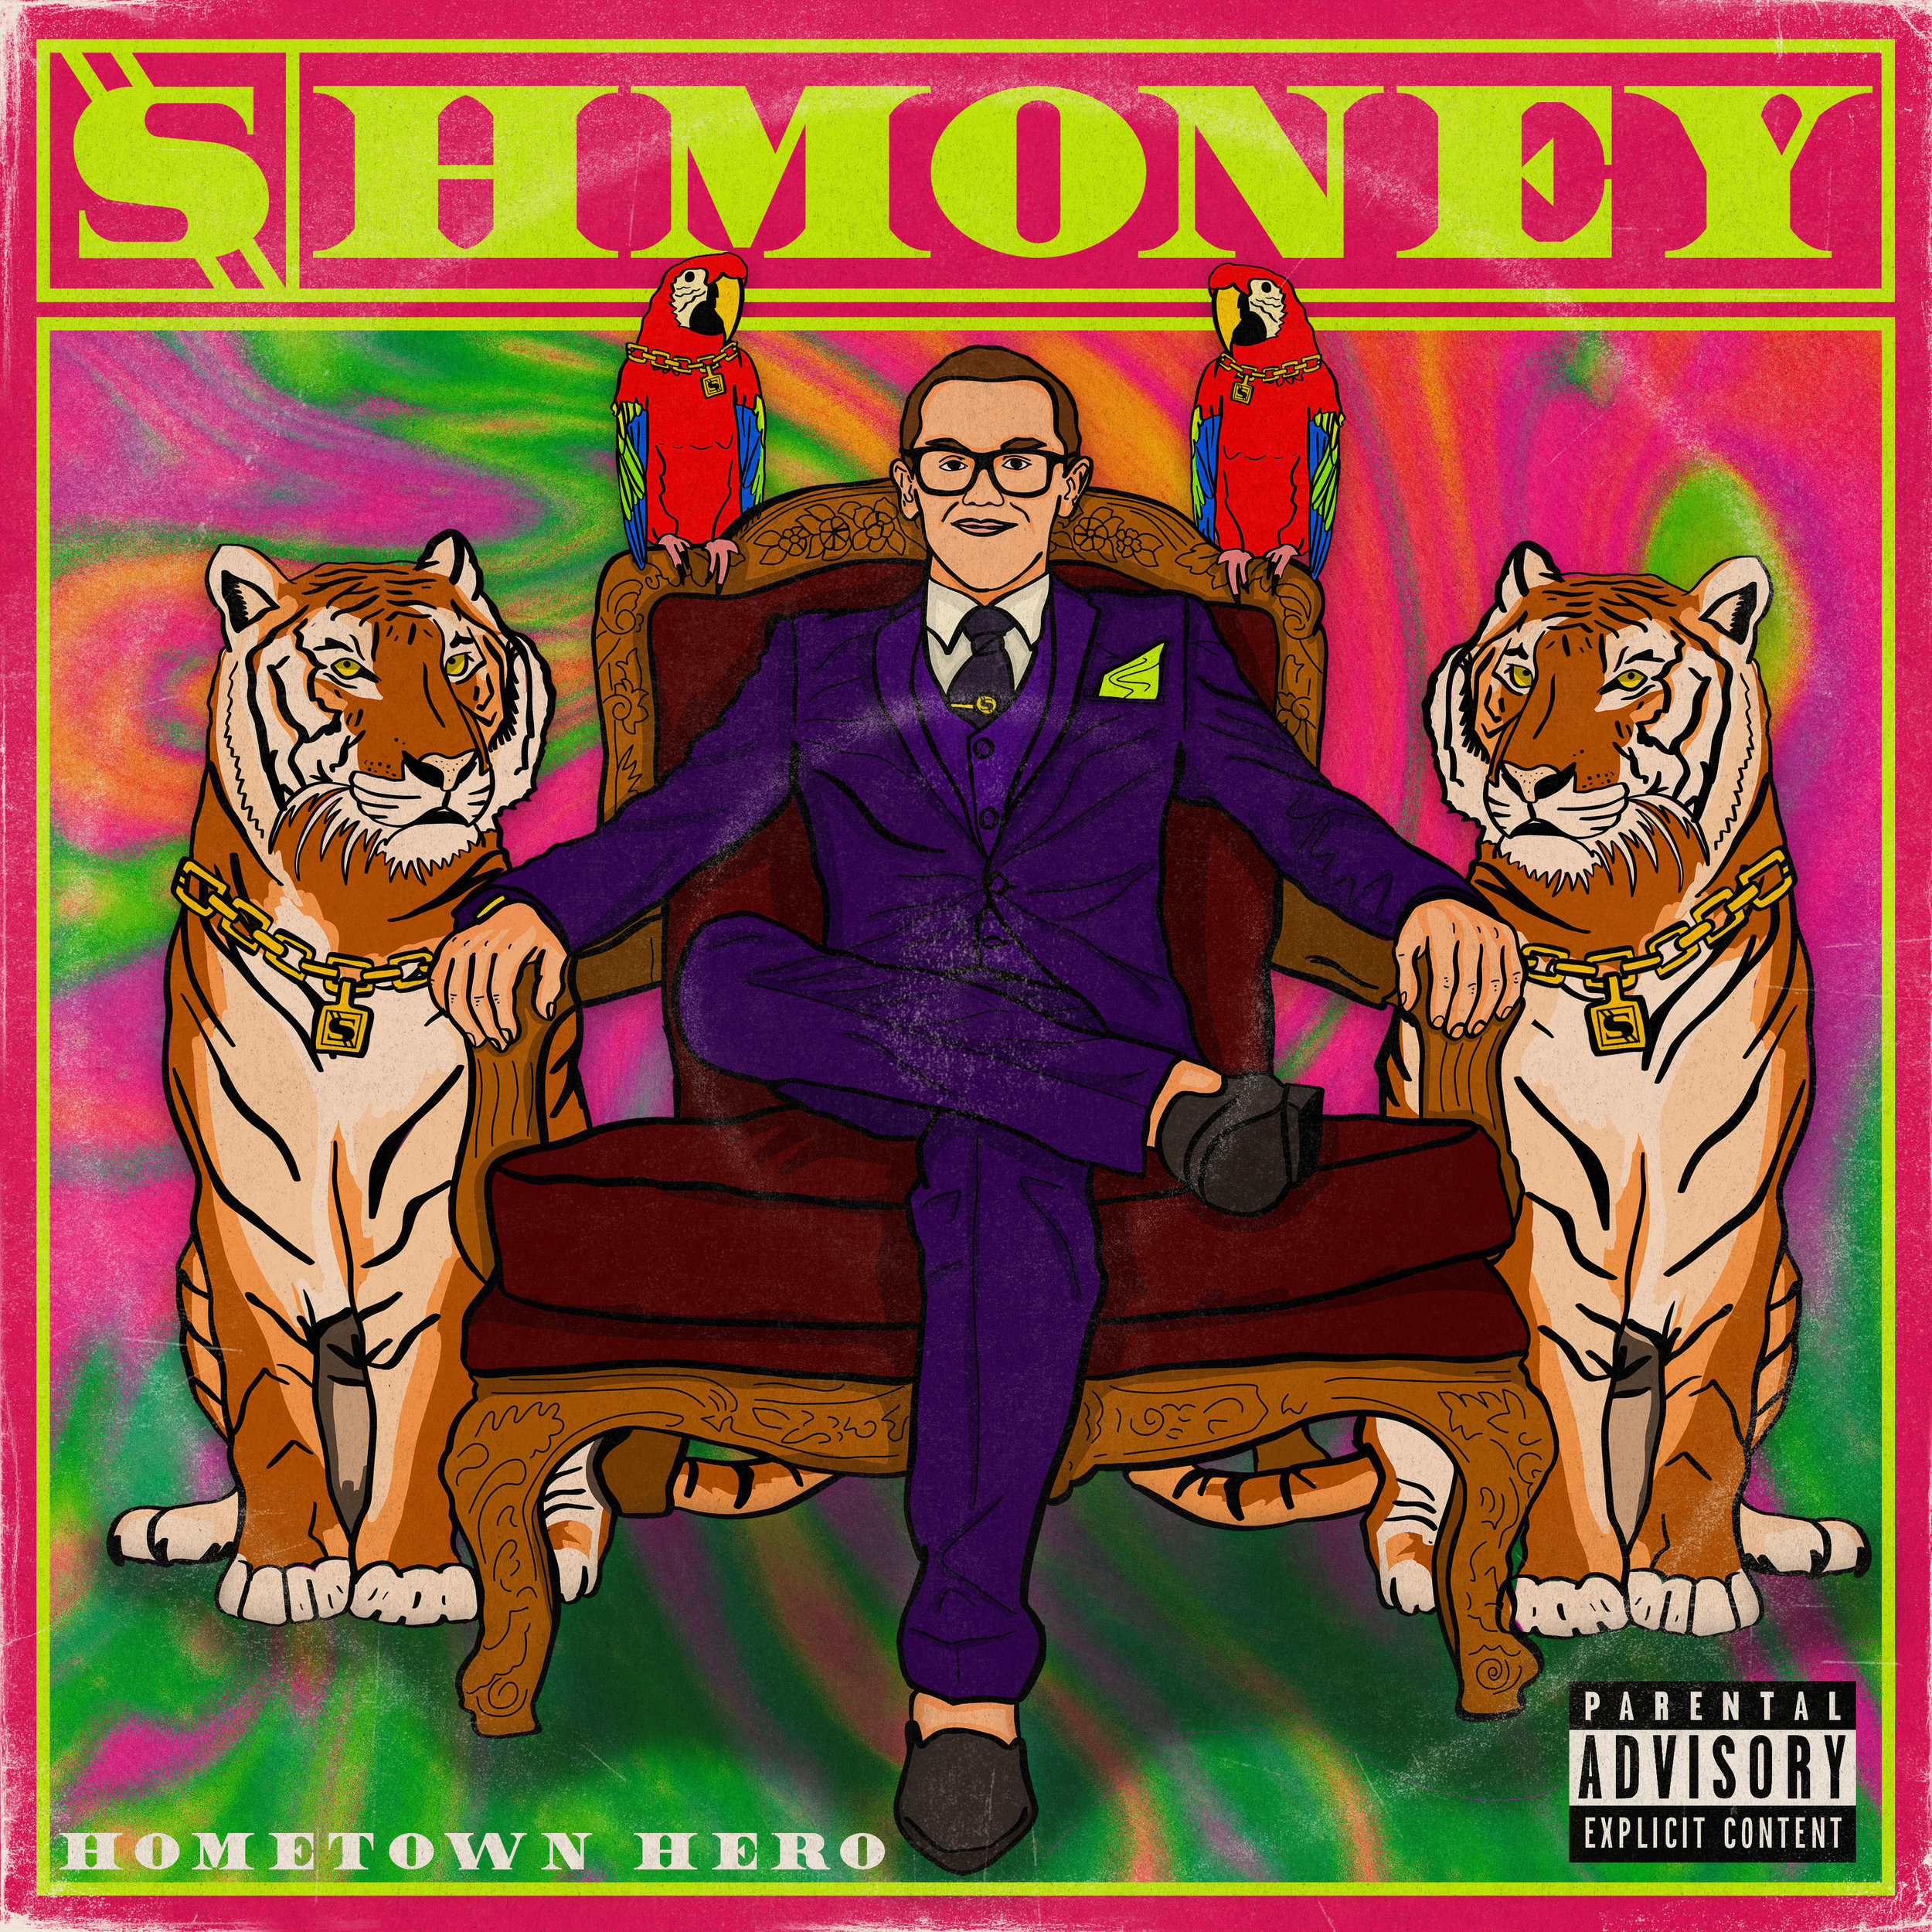 Shmoney_Covercopy.jpg